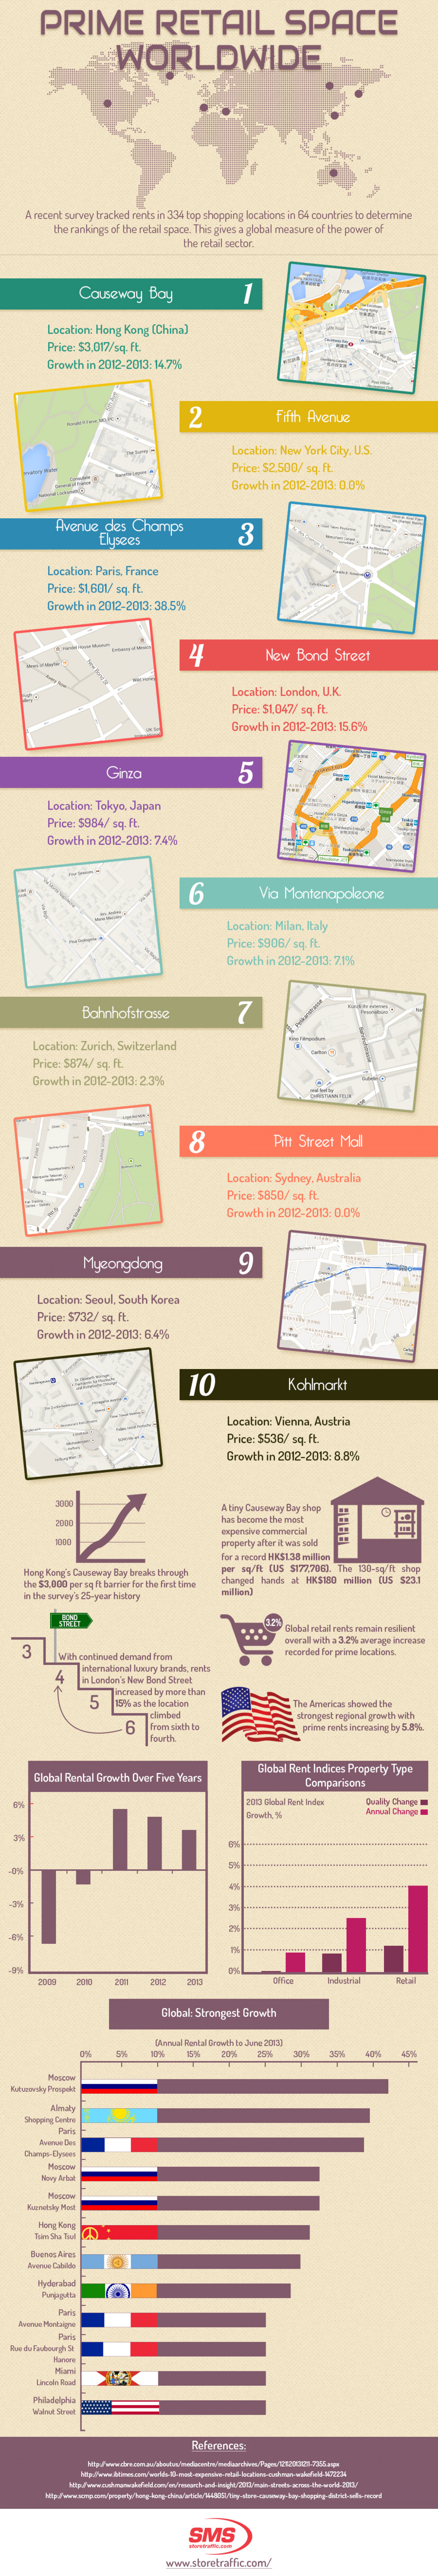 Prime Retail Space Worlwide Infographic